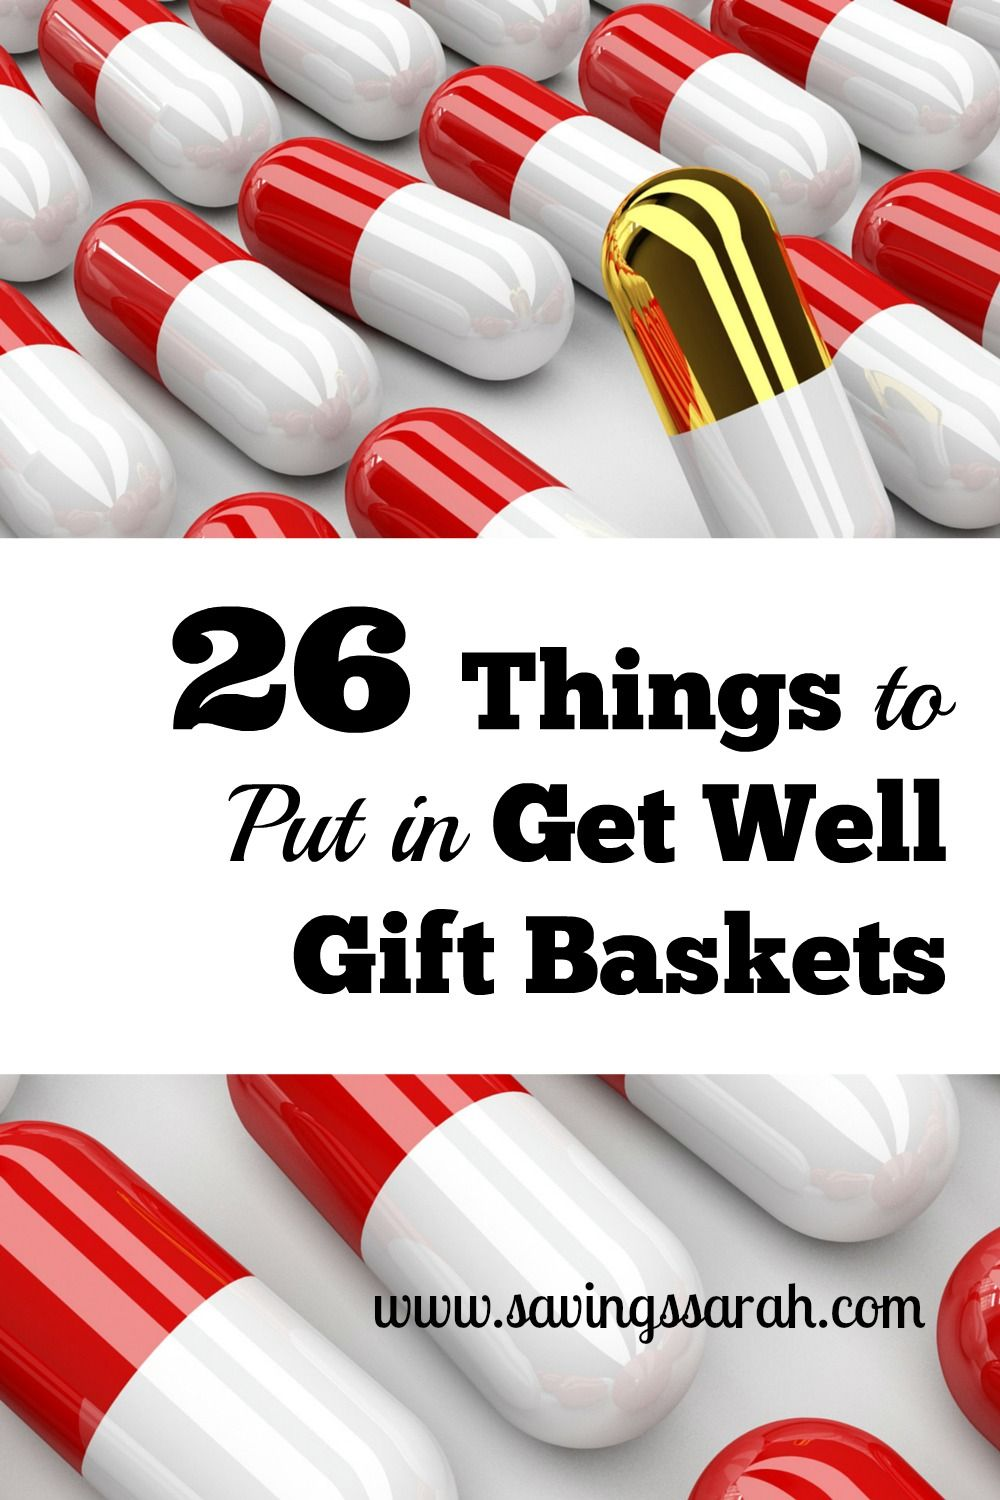 26 Things to Put in Get Well Gift Baskets | Surgery, Cheer and Gift